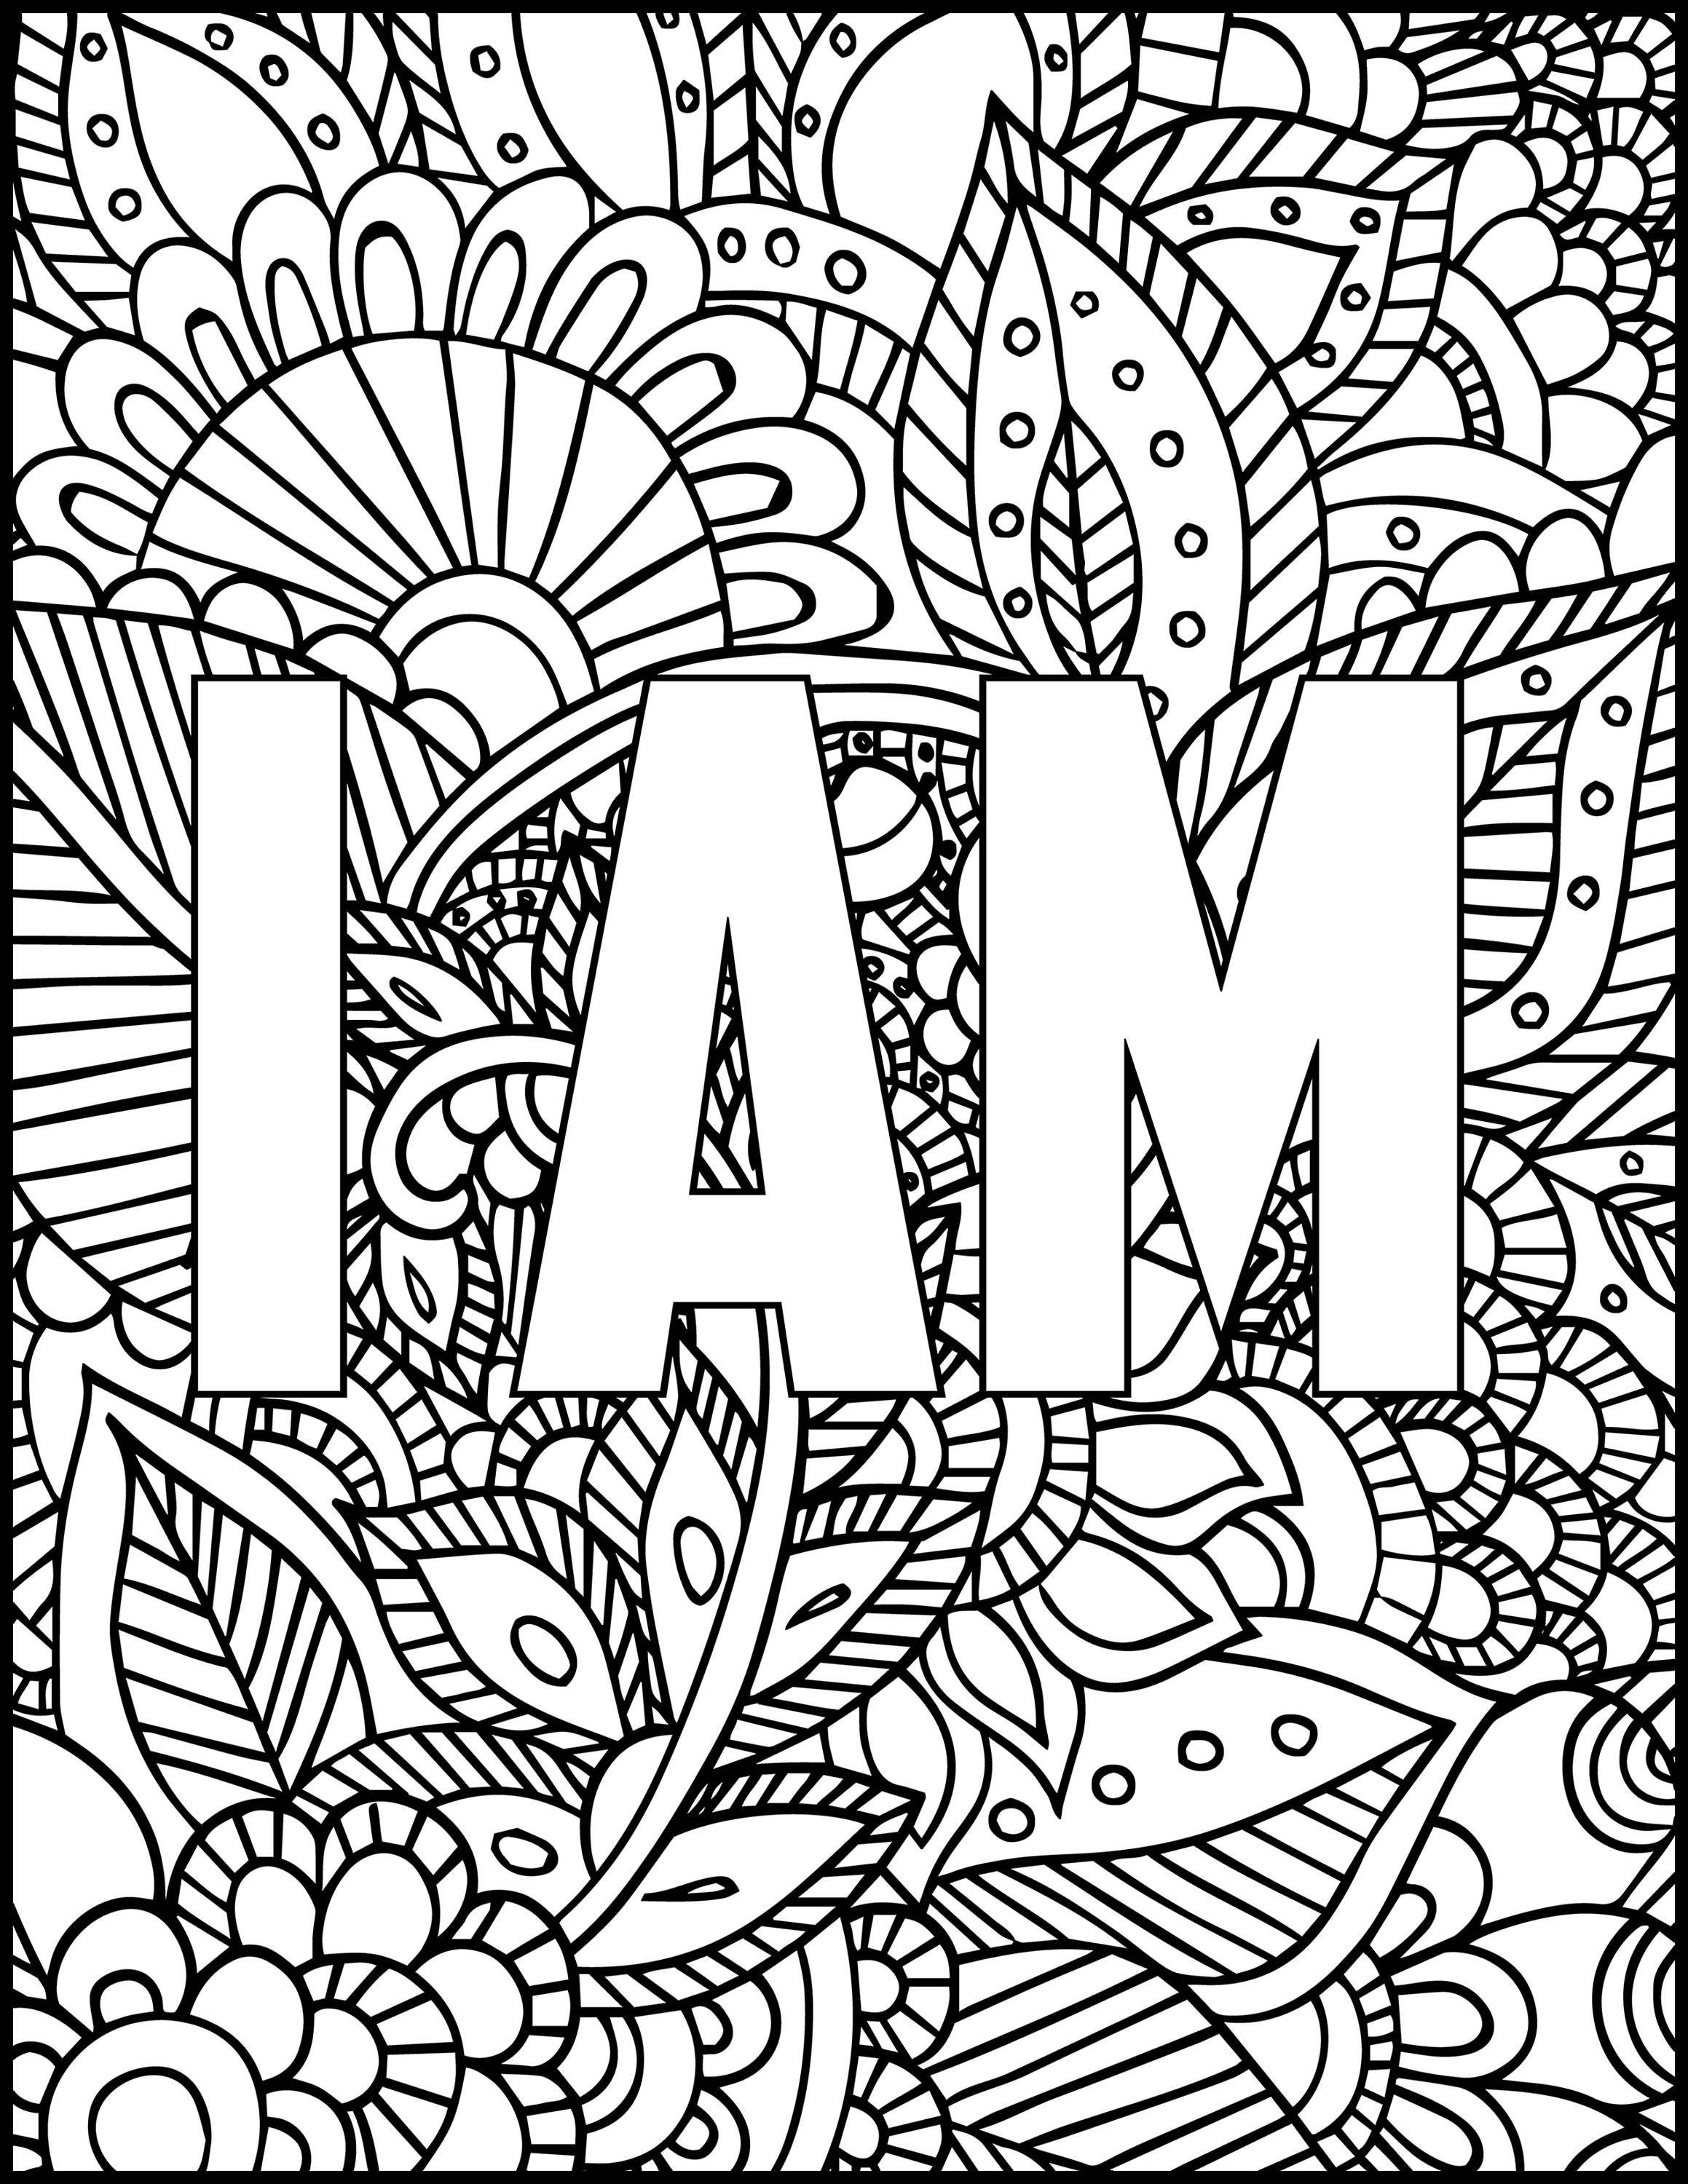 coloring printable free printable fantasy coloring pages for kids best printable coloring